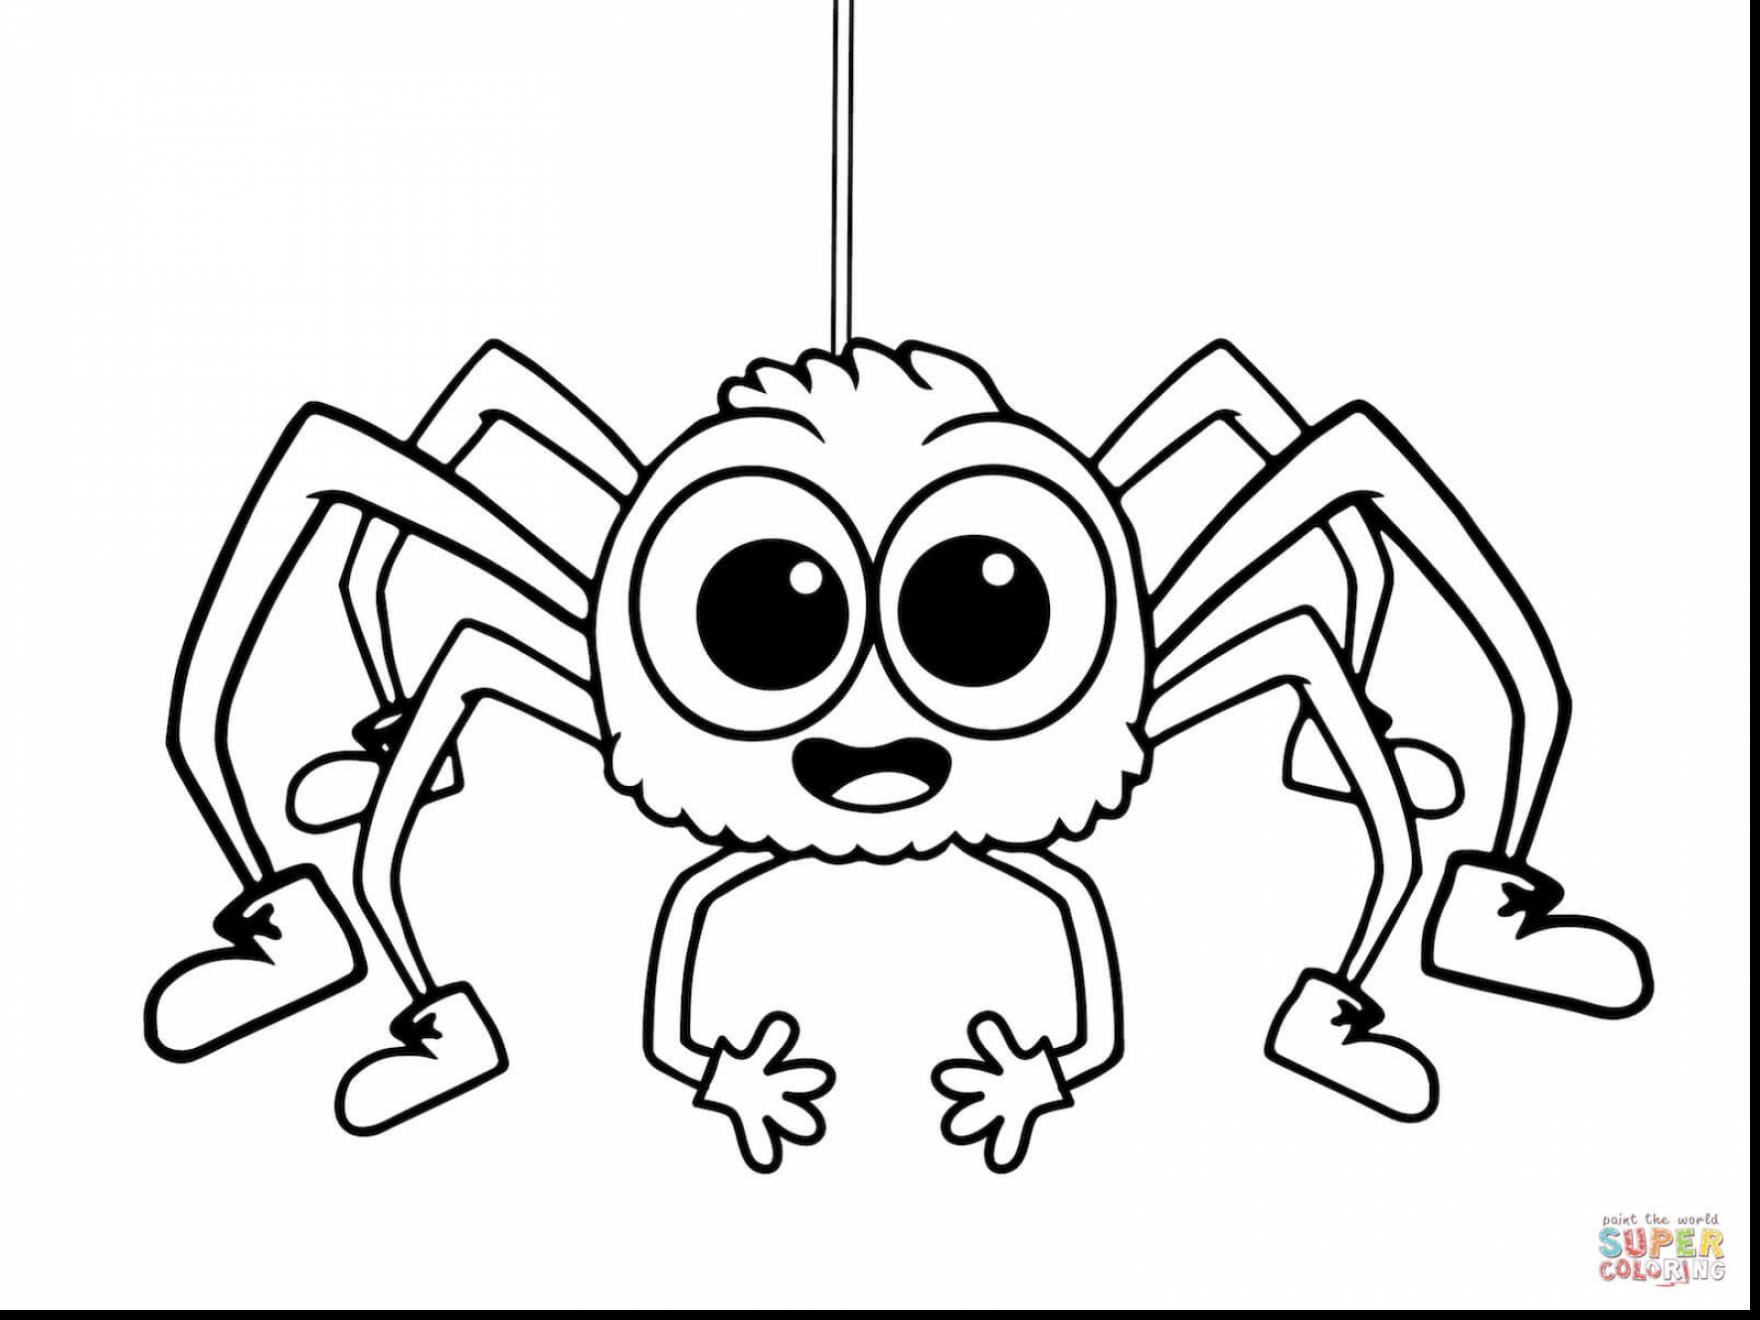 minecraft spider drawing minecraft spider drawing at getdrawings free download drawing spider minecraft 1 1